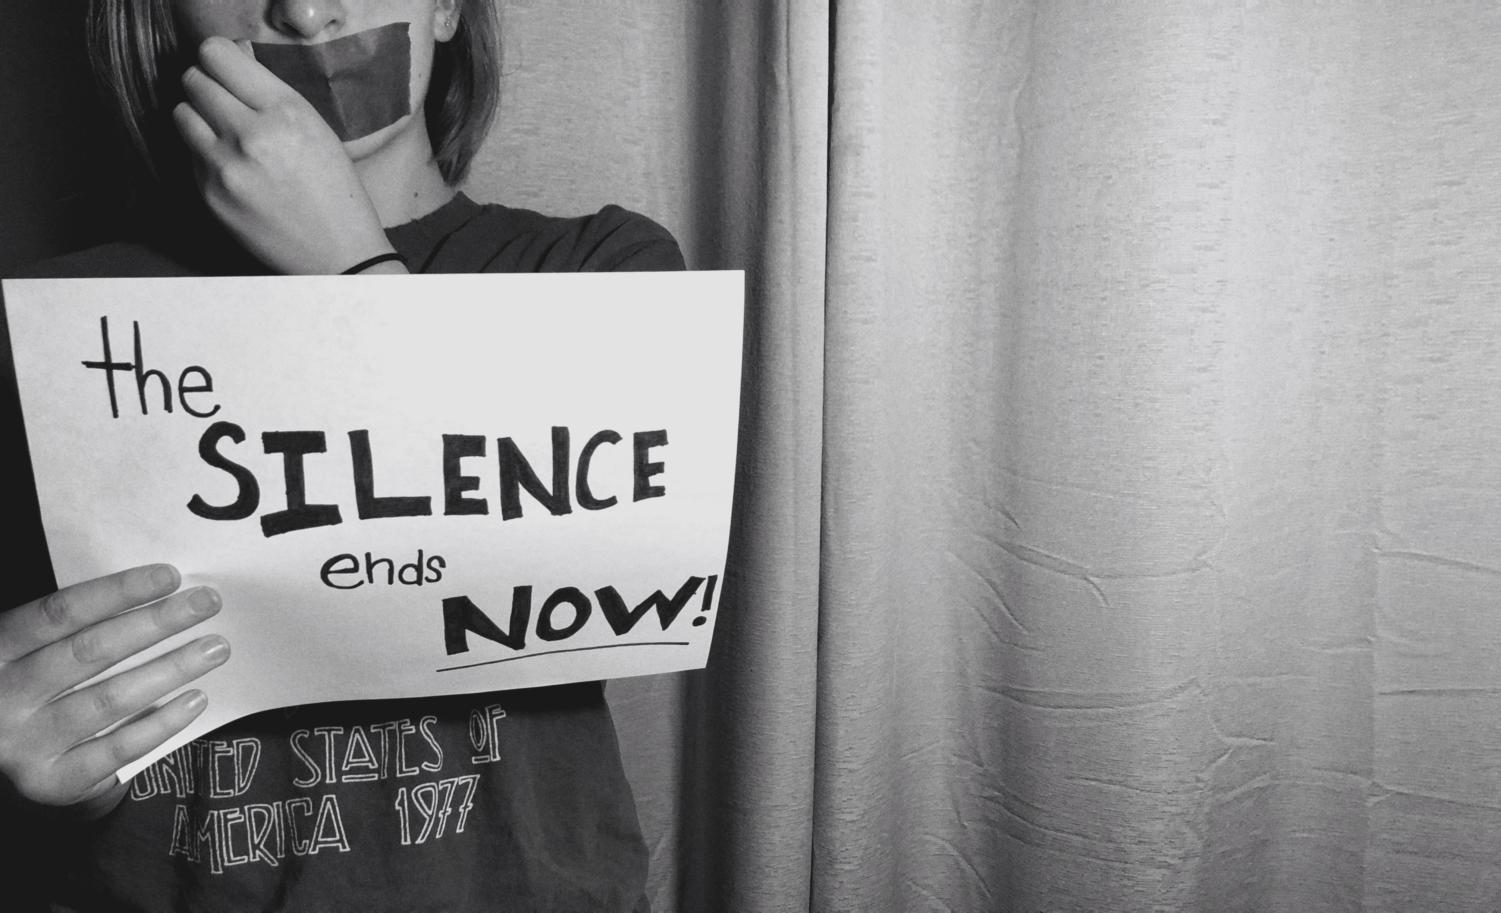 Fifteen to 35 percent of sexual assaults get reported,  it's time to break the silence and speak out.